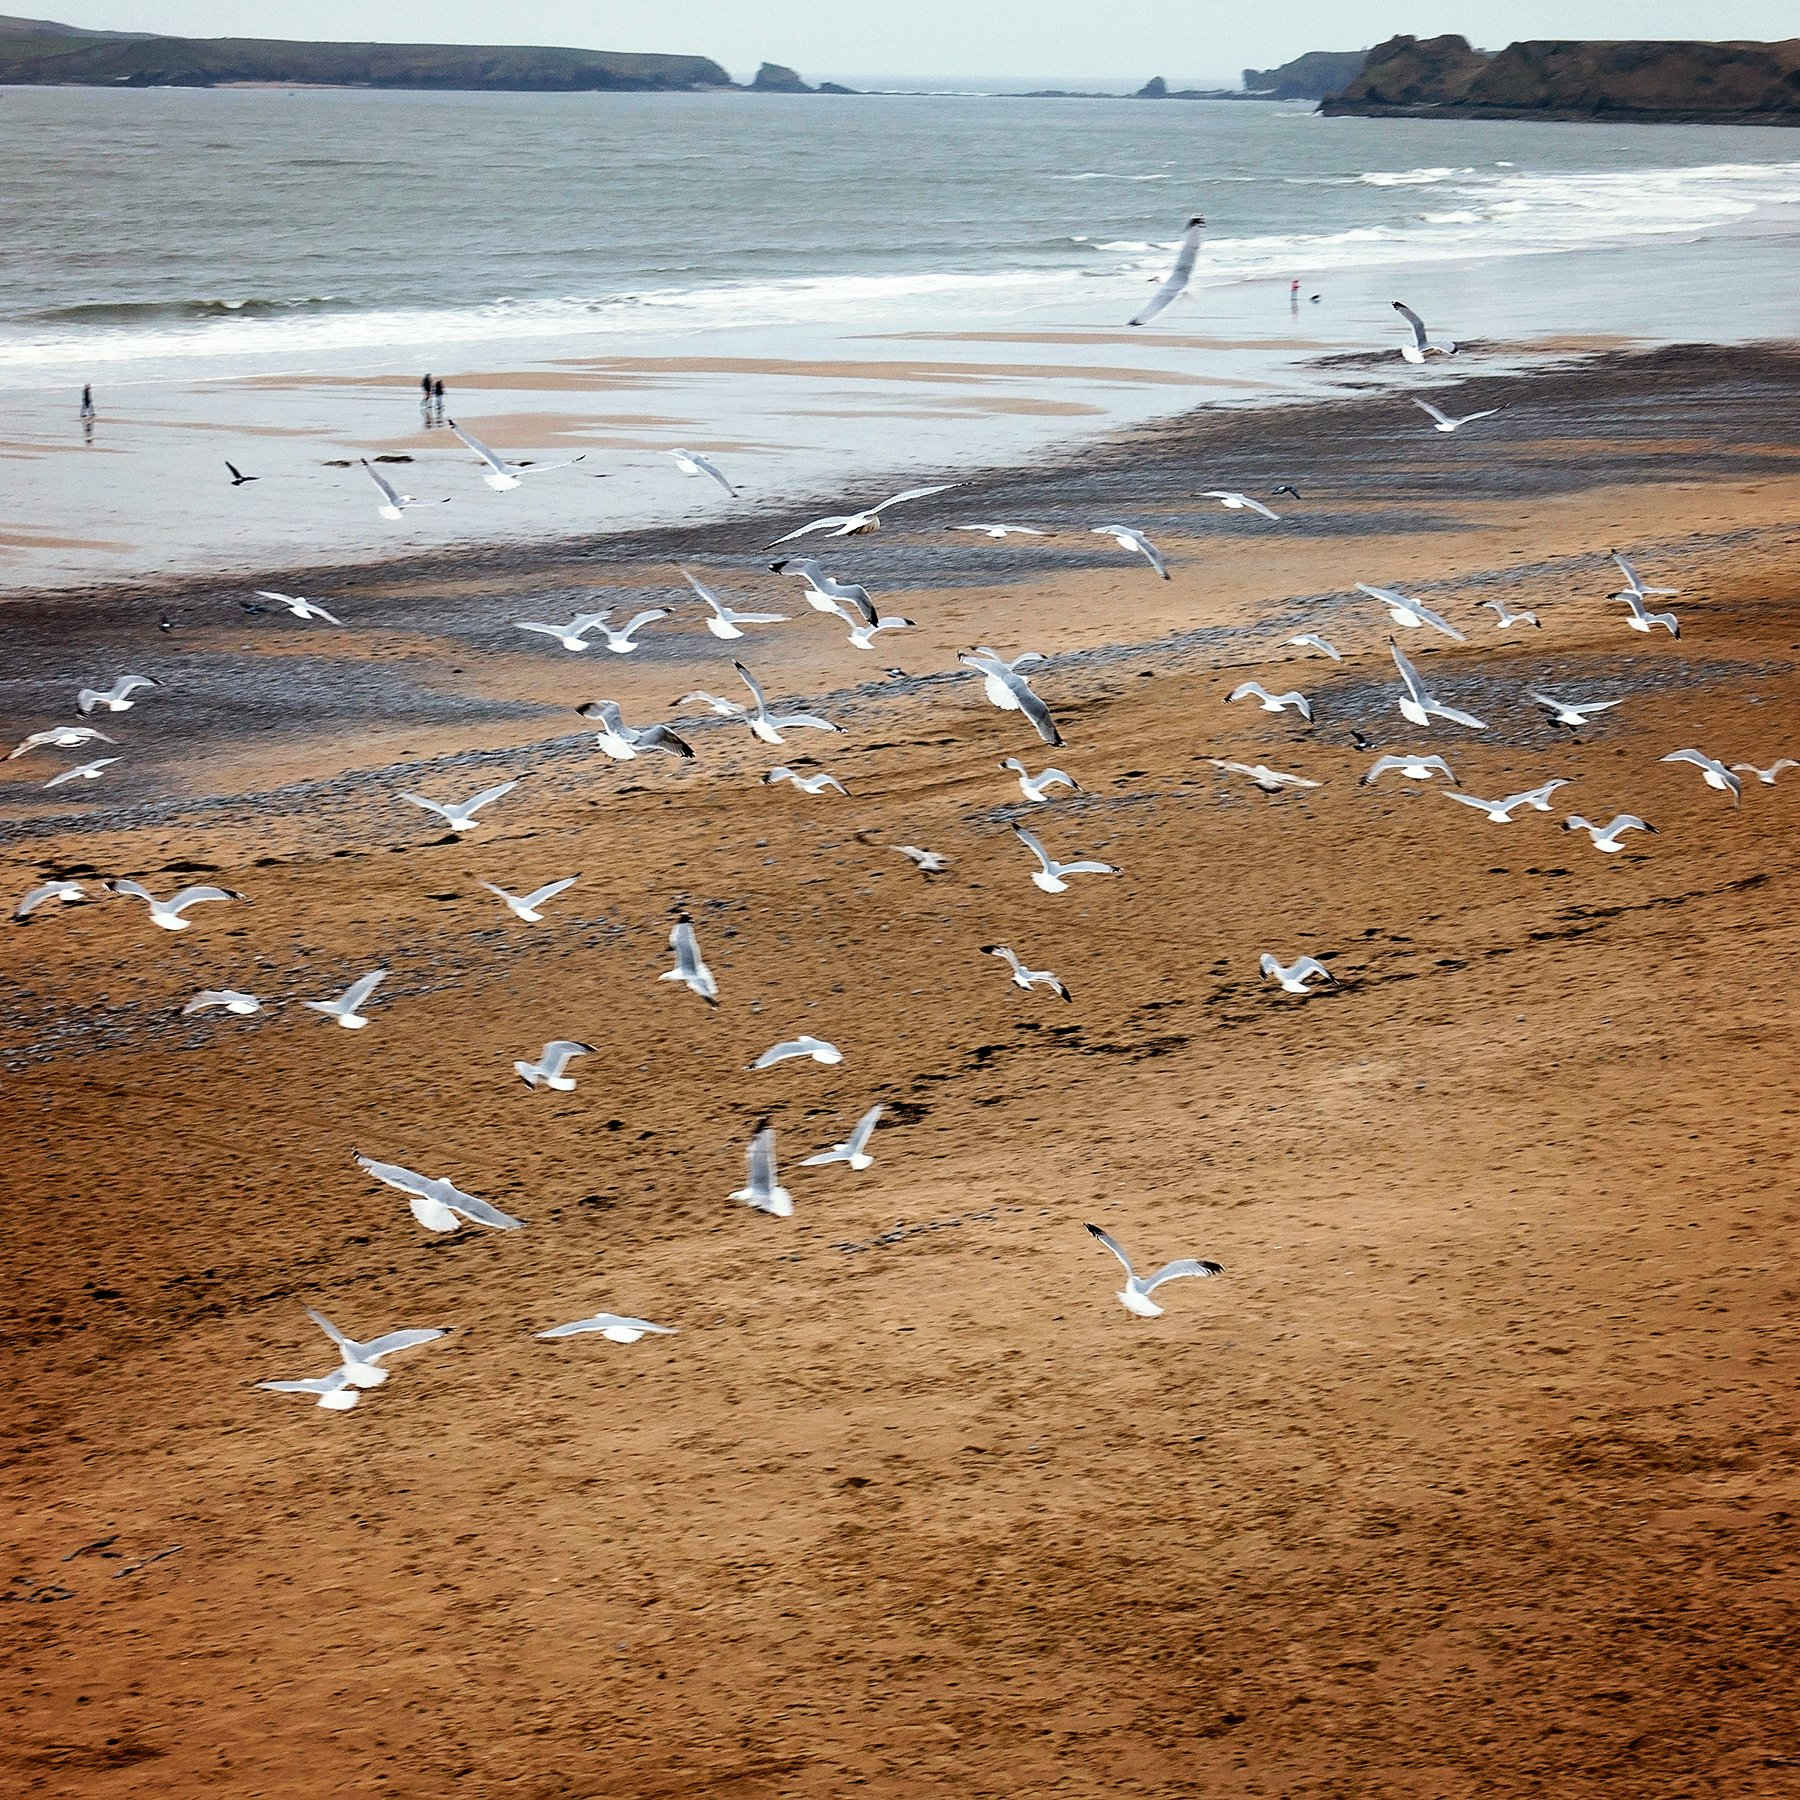 Castle beach in Tenby